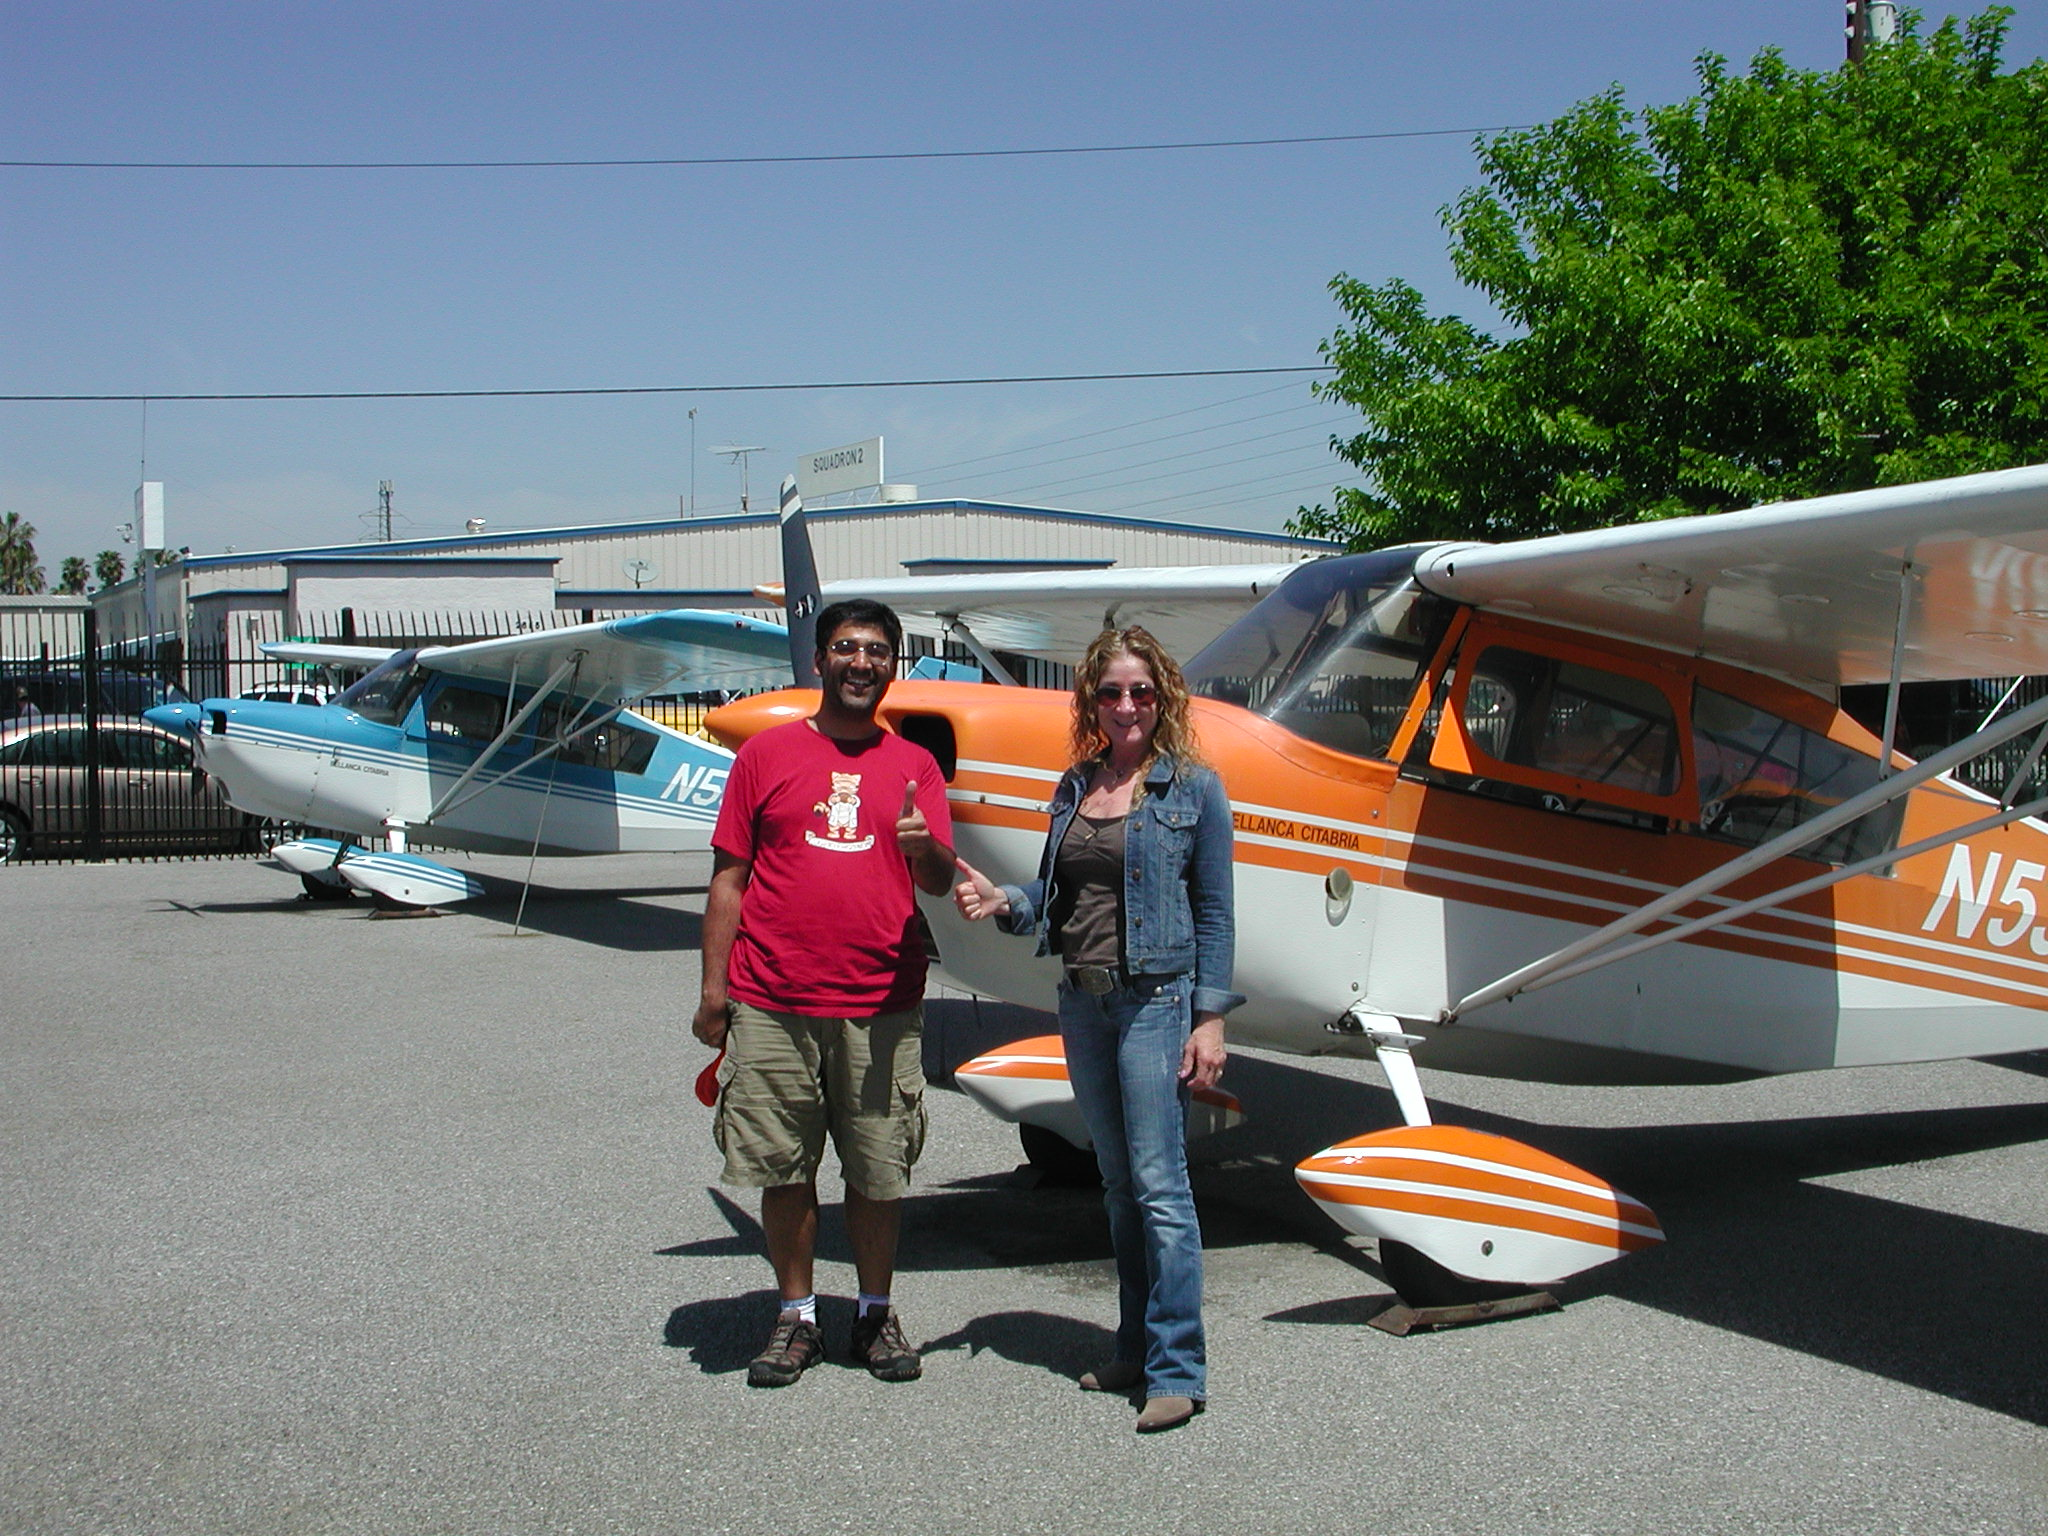 Hrishikesh Mehendale passes private pilot checkride at AeroDynamic Aviation located at Reid Hillview Airport in San Jose, CA.